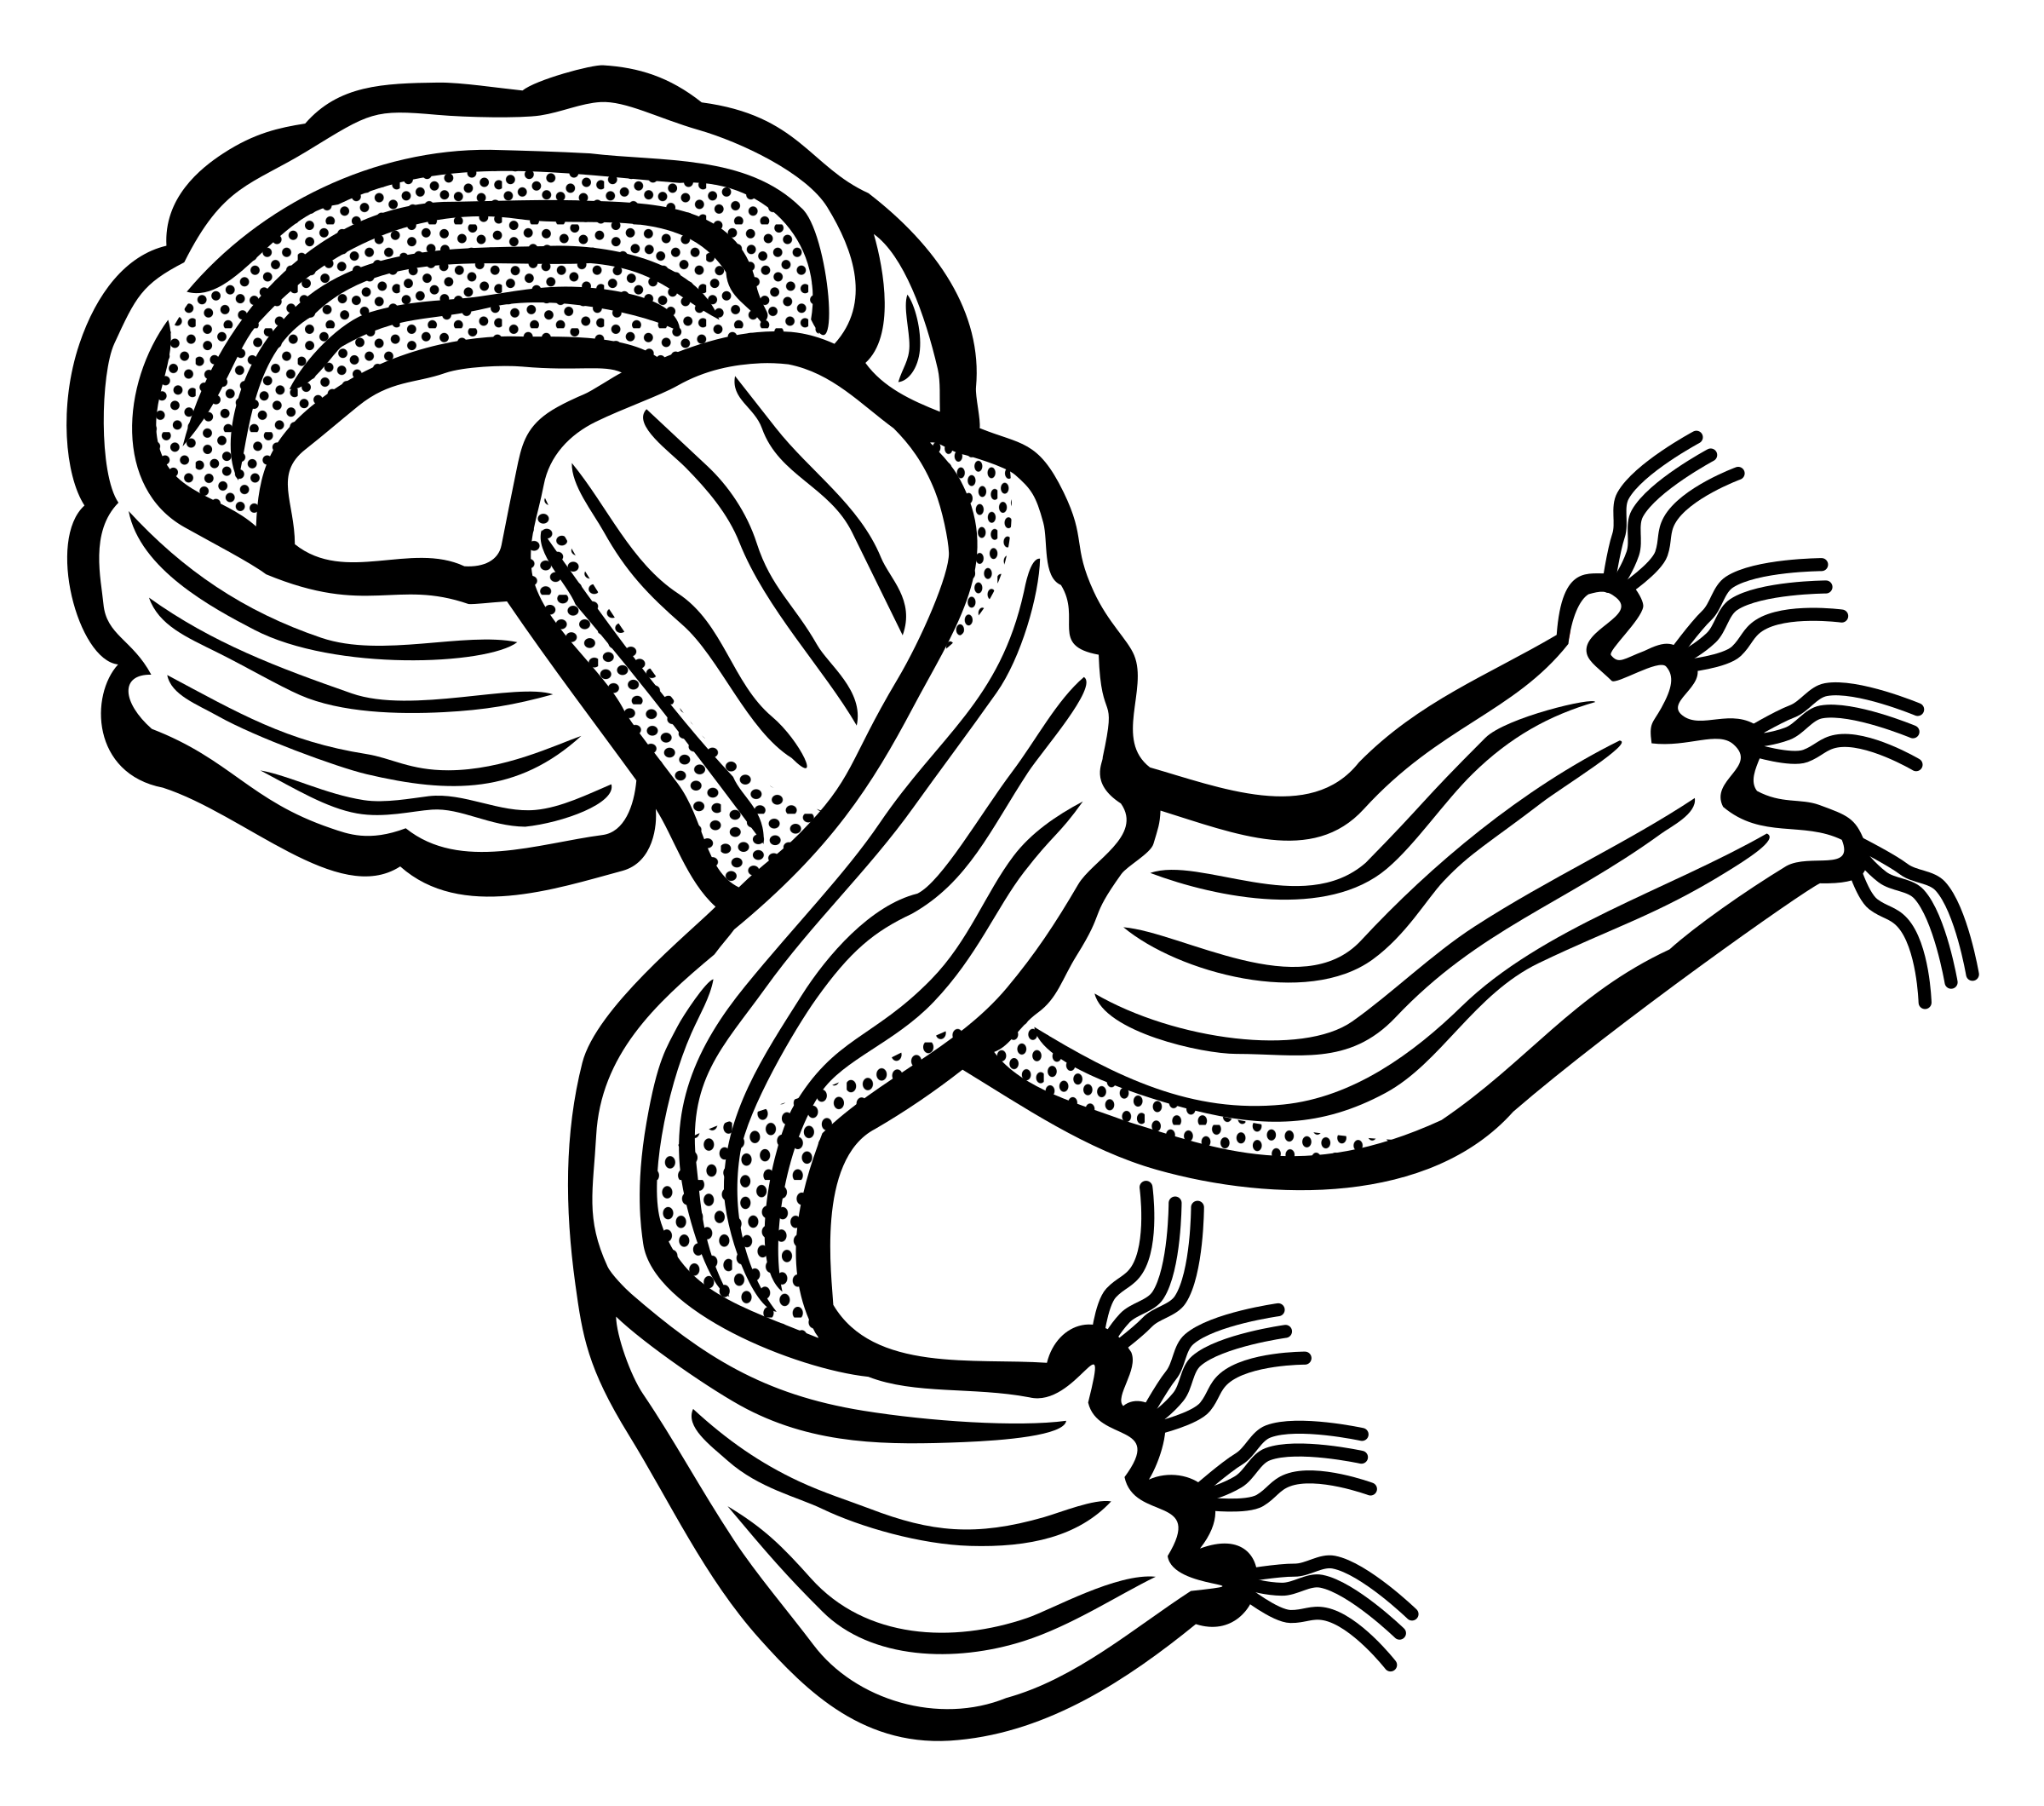 Clipart scarf clipart royalty free Scarf Clipart transparent PNG - StickPNG clipart royalty free